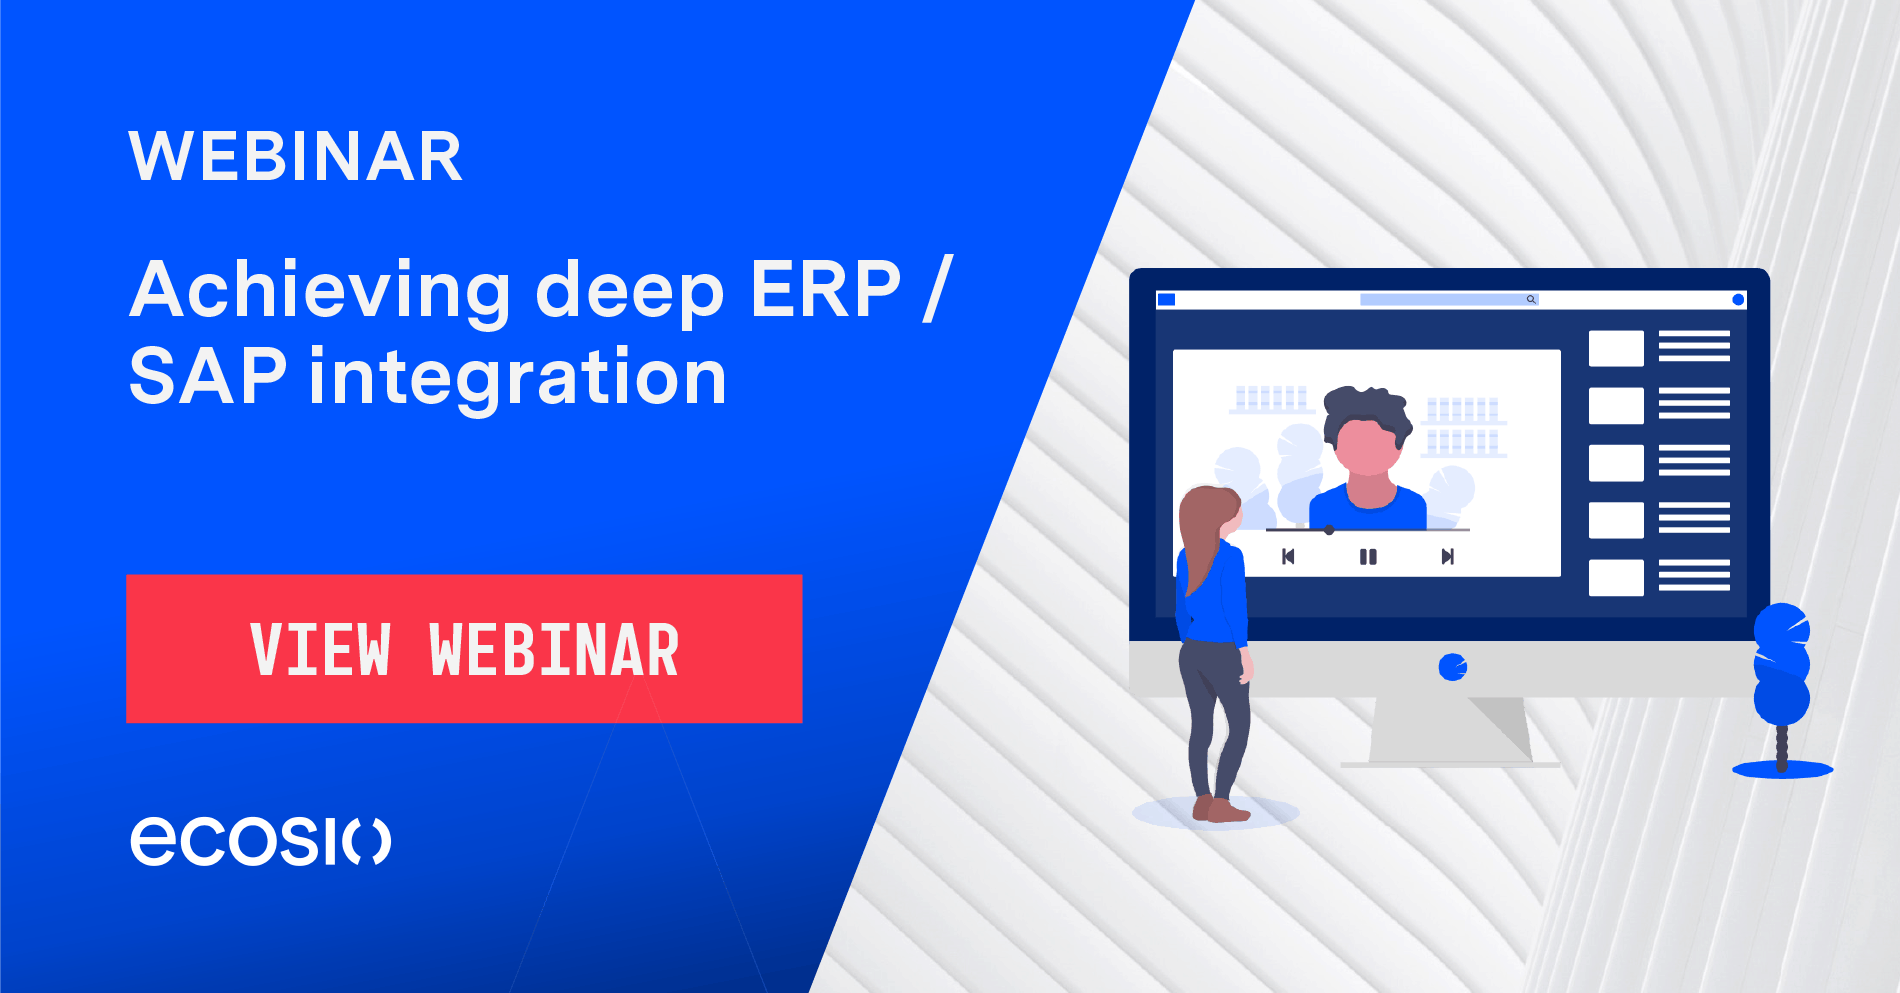 Webinar - Achieving Deep ERP SAP Integration